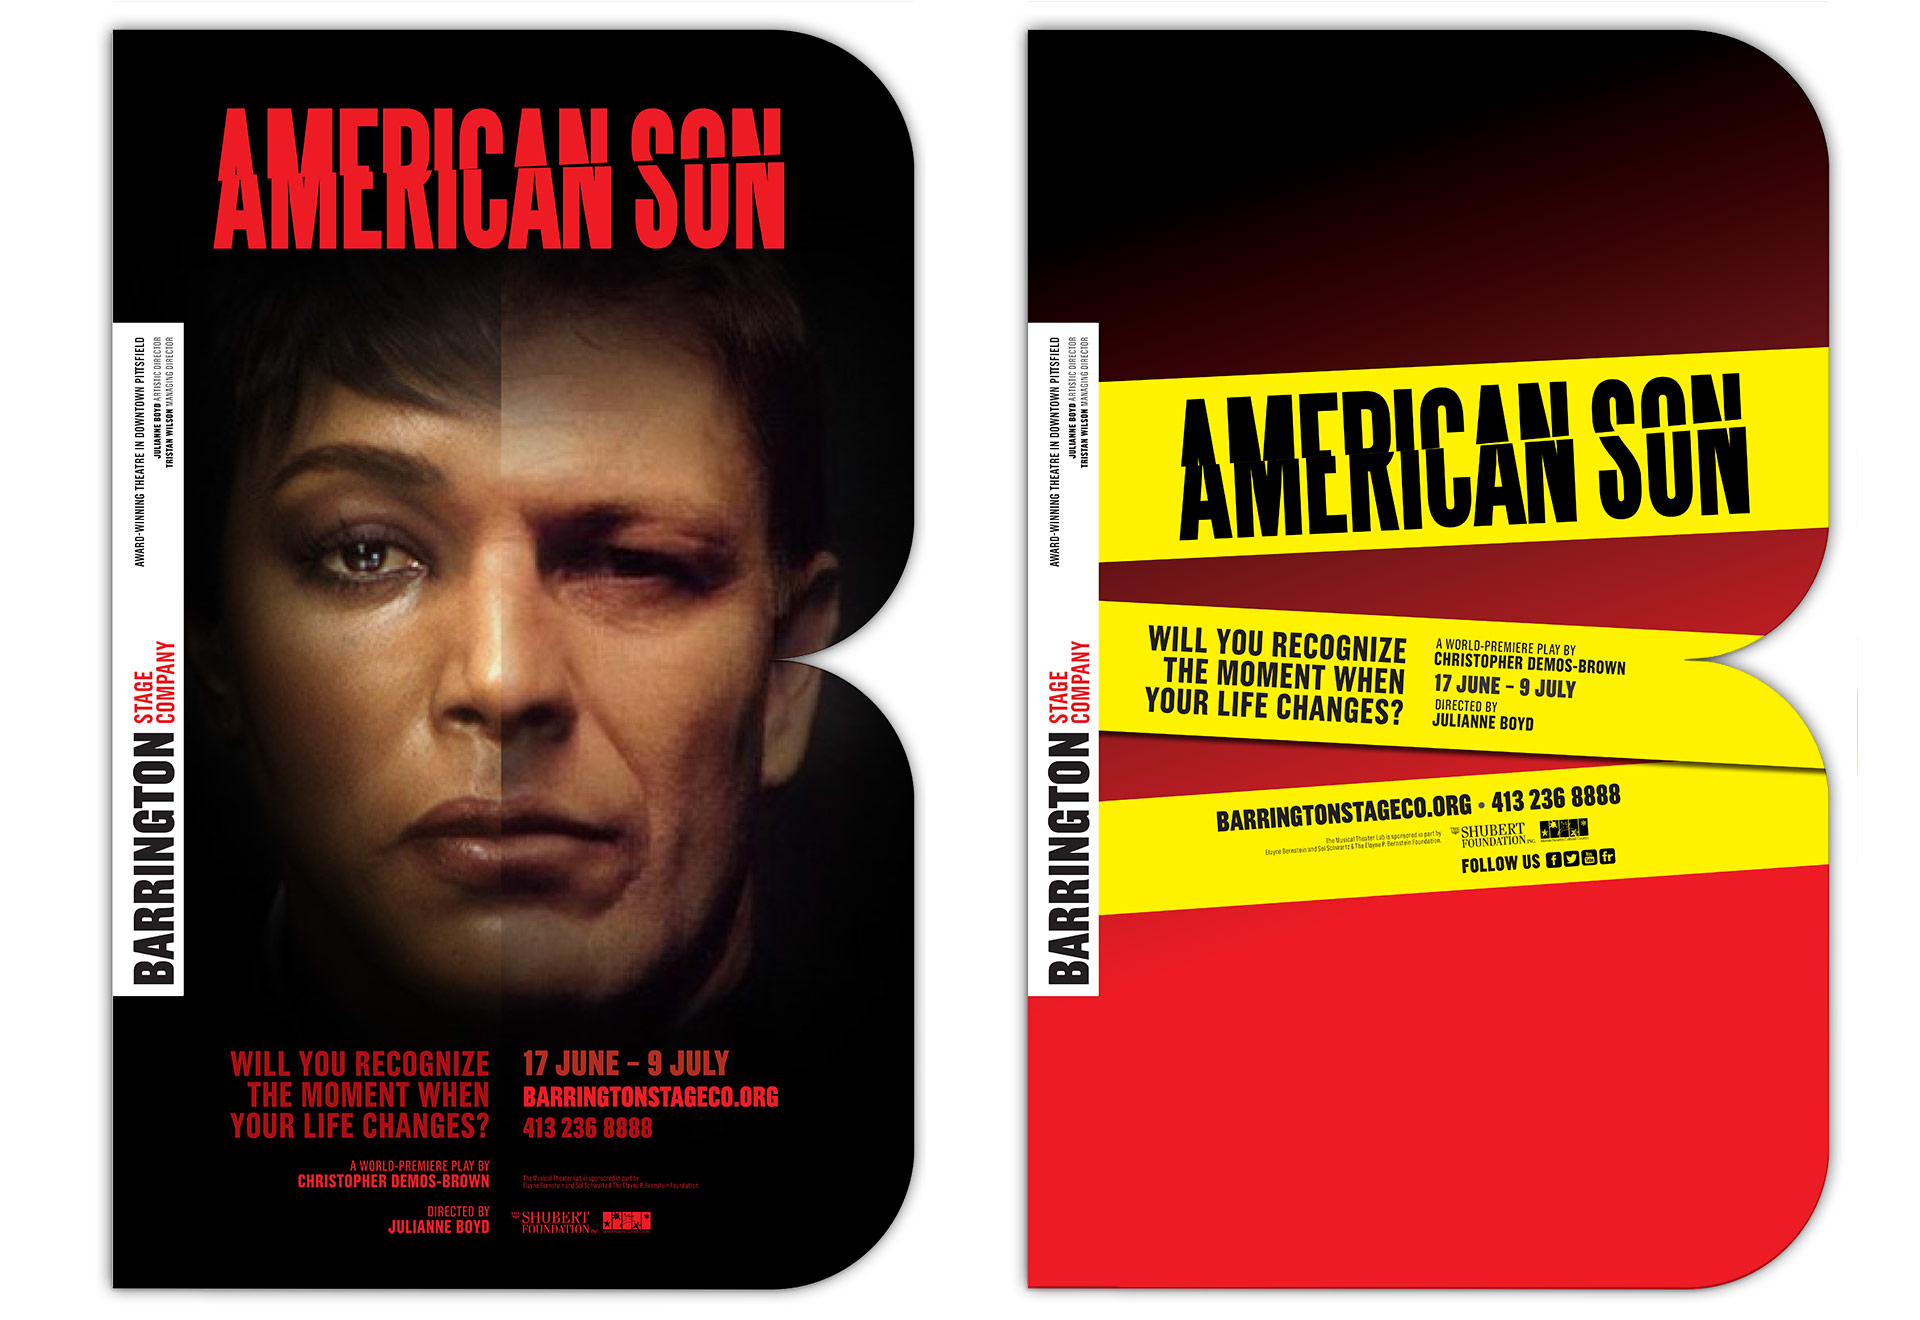 Barrington-comps-american-son-04.jpg